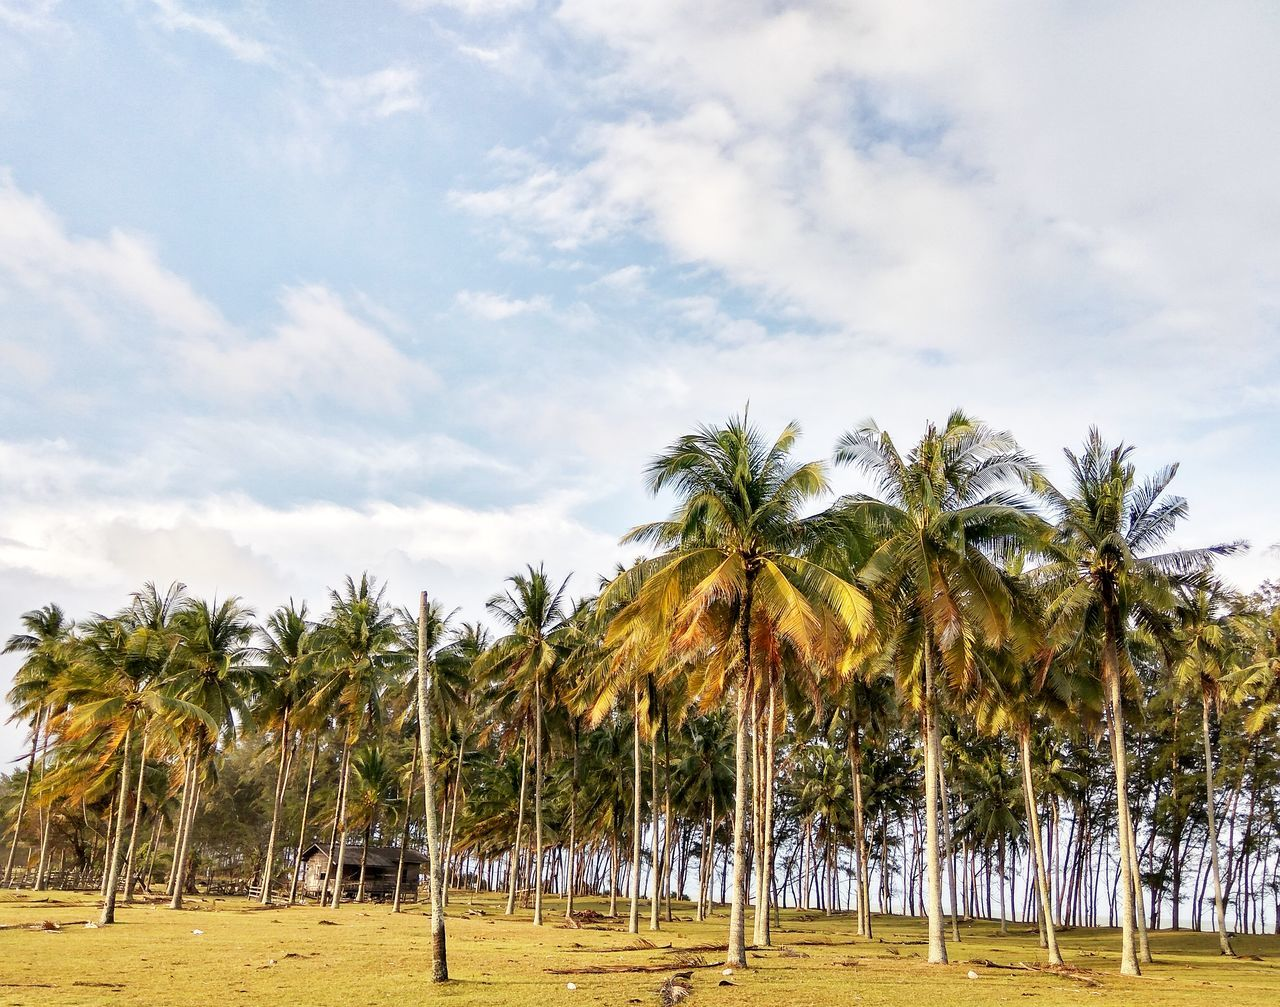 Coconut trees perspective view with old house near beach Tree Palm Tree Nature Sunset Sky Social Issues No People Outdoors Landscape Beauty In Nature Day Coconut beach